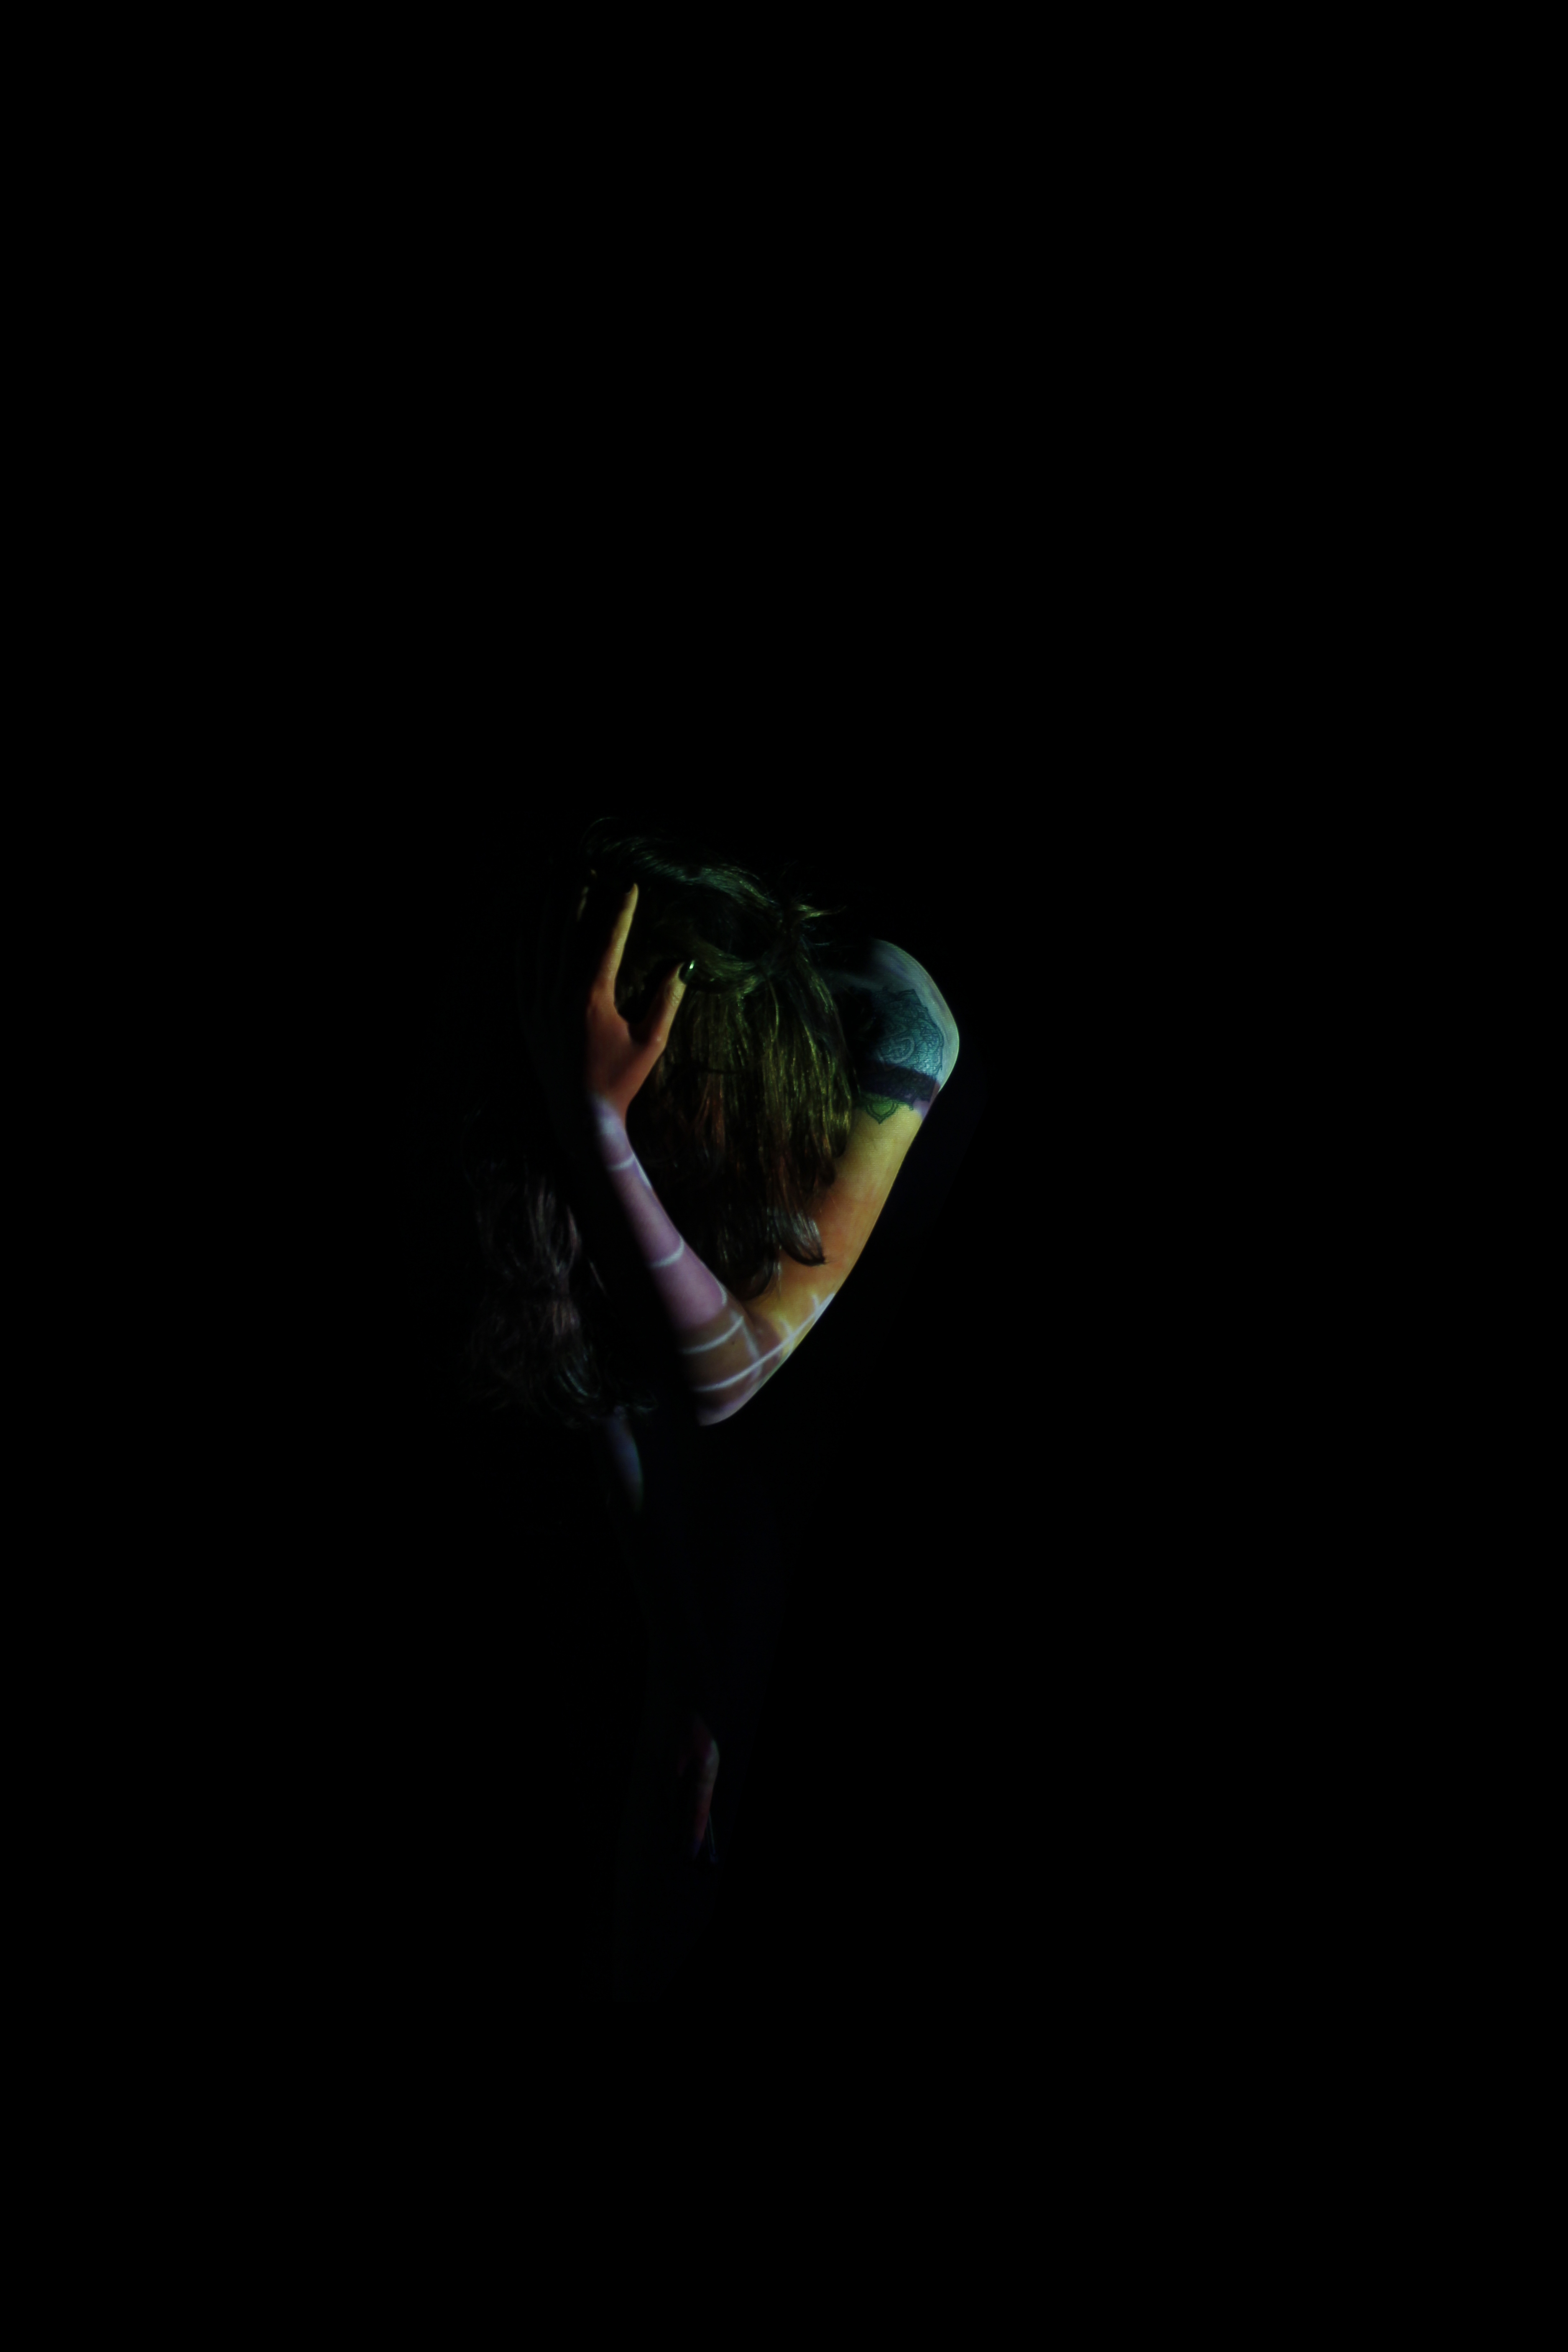 Photograph: Model with color on black background